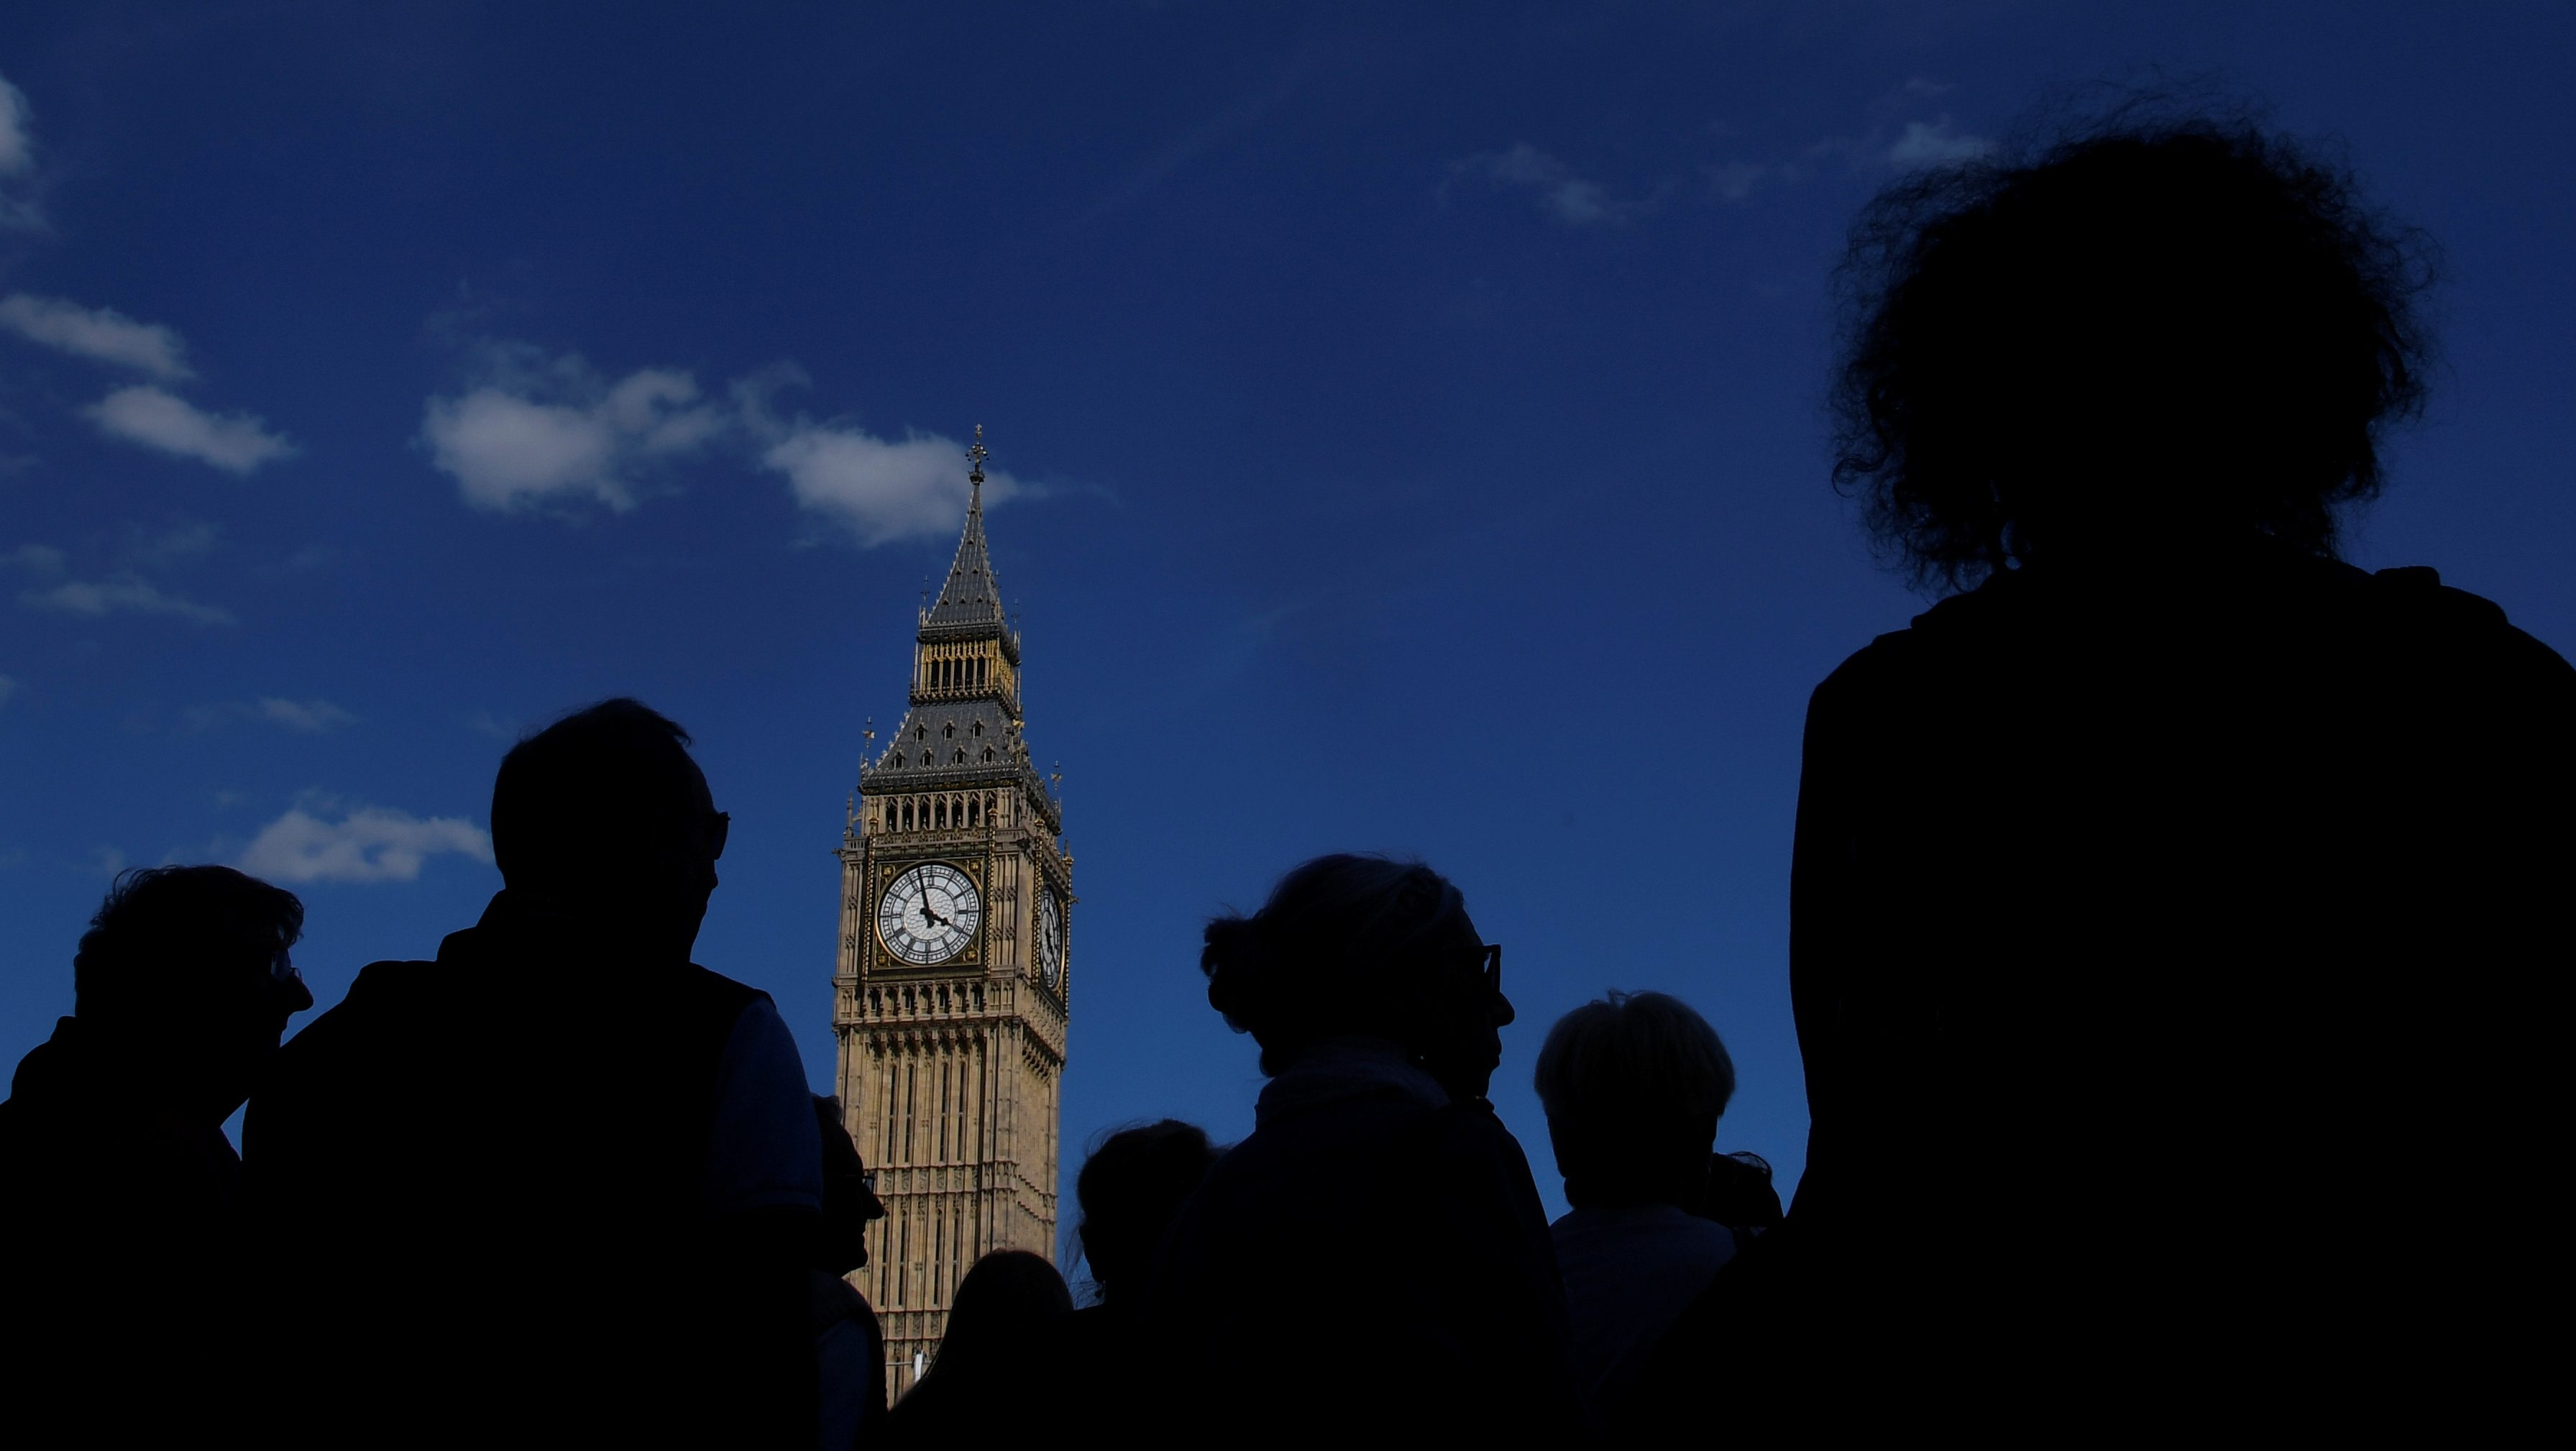 Tourists view the Elizabeth Tower, which houses the Great Clock and the 'Big Ben' bell, at the Houses of Parliament, in central London, Britain, August 16, 2017.